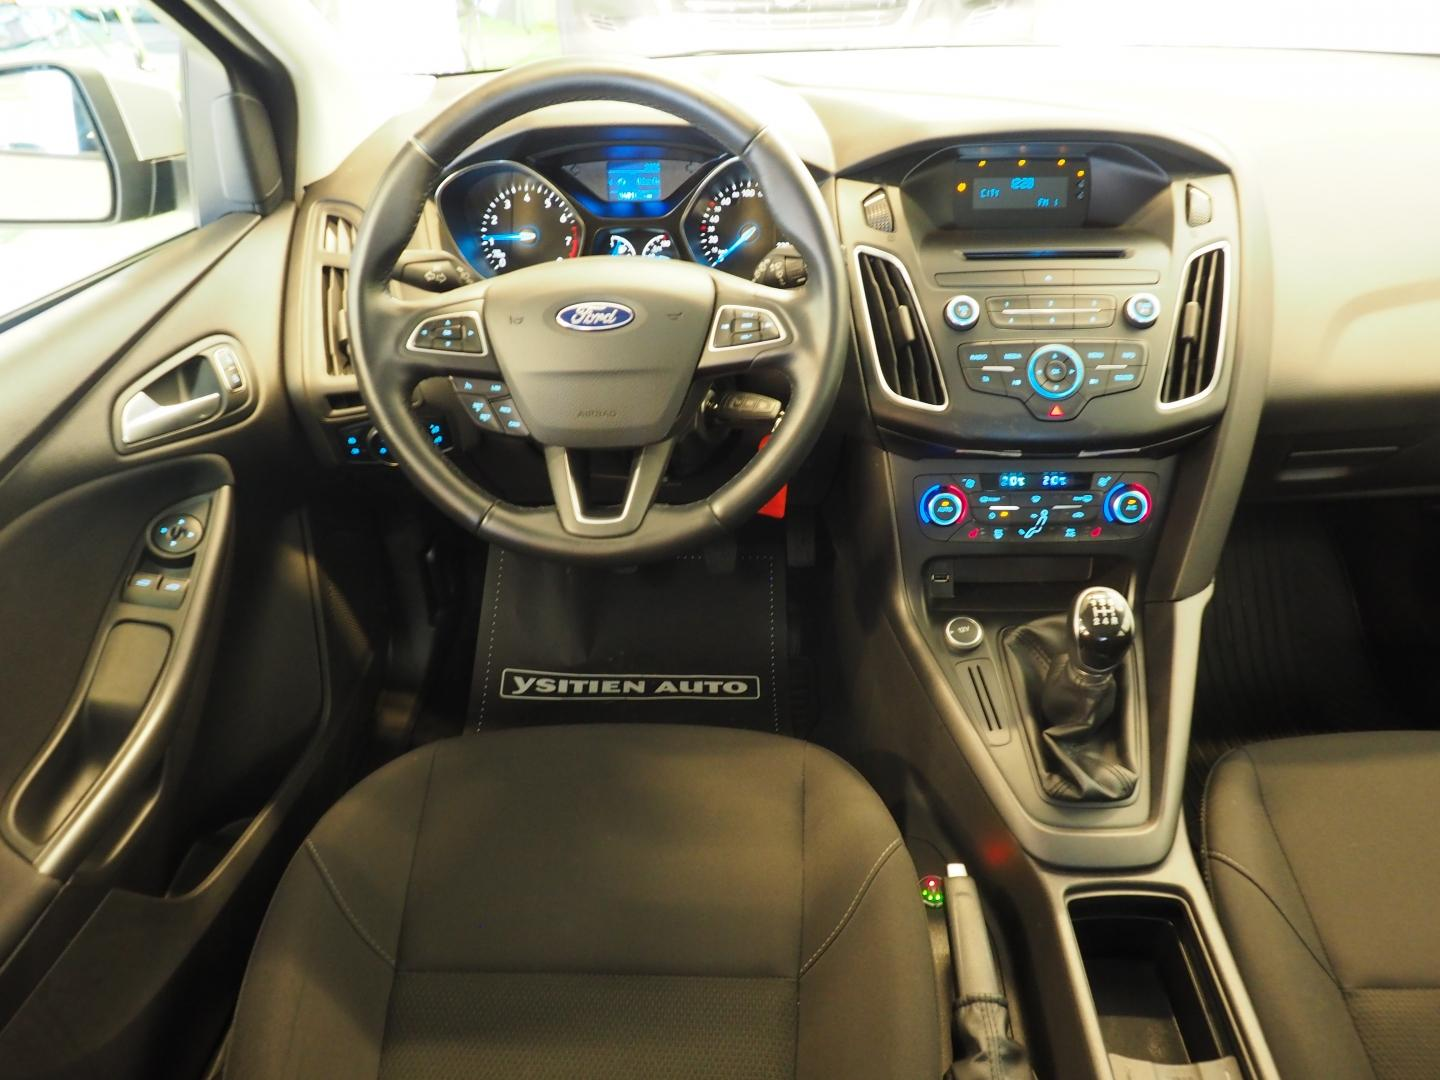 Ford Focus, 1.6 CNG Trend M5